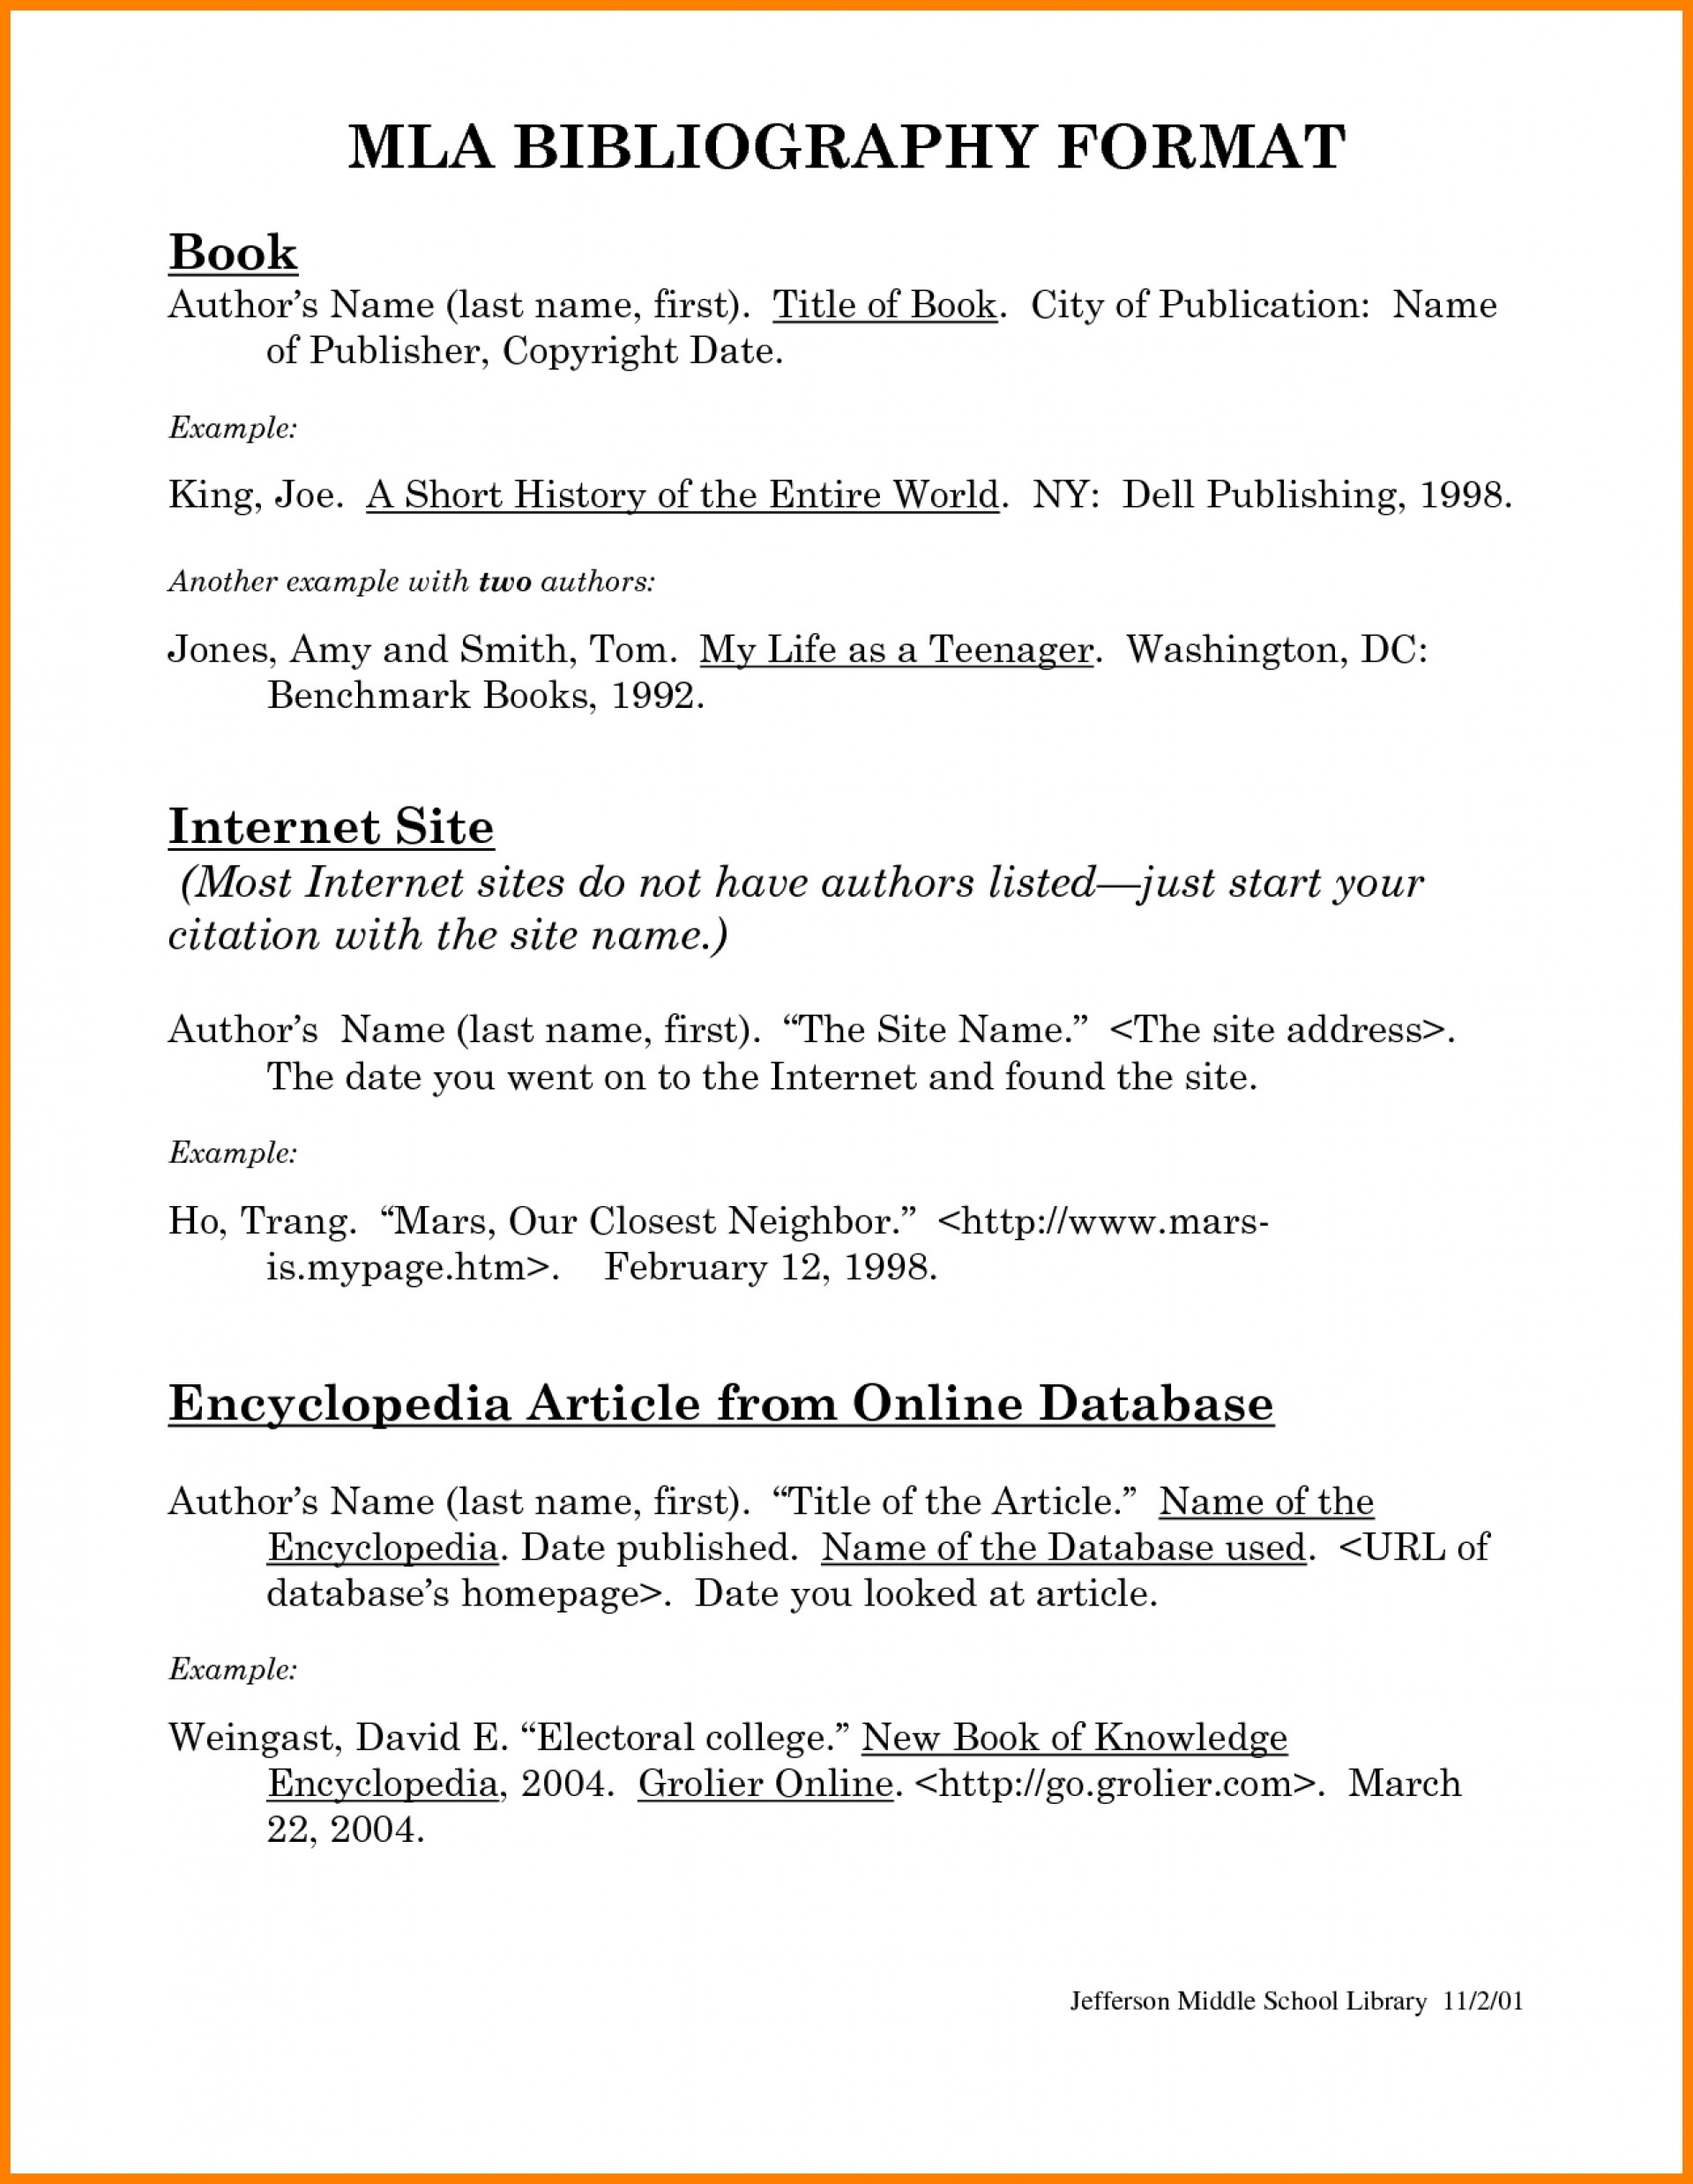 014 Mla Works Cited Citation Example Inspirational Format Website Anthonydeaton With Research Unusual 1920